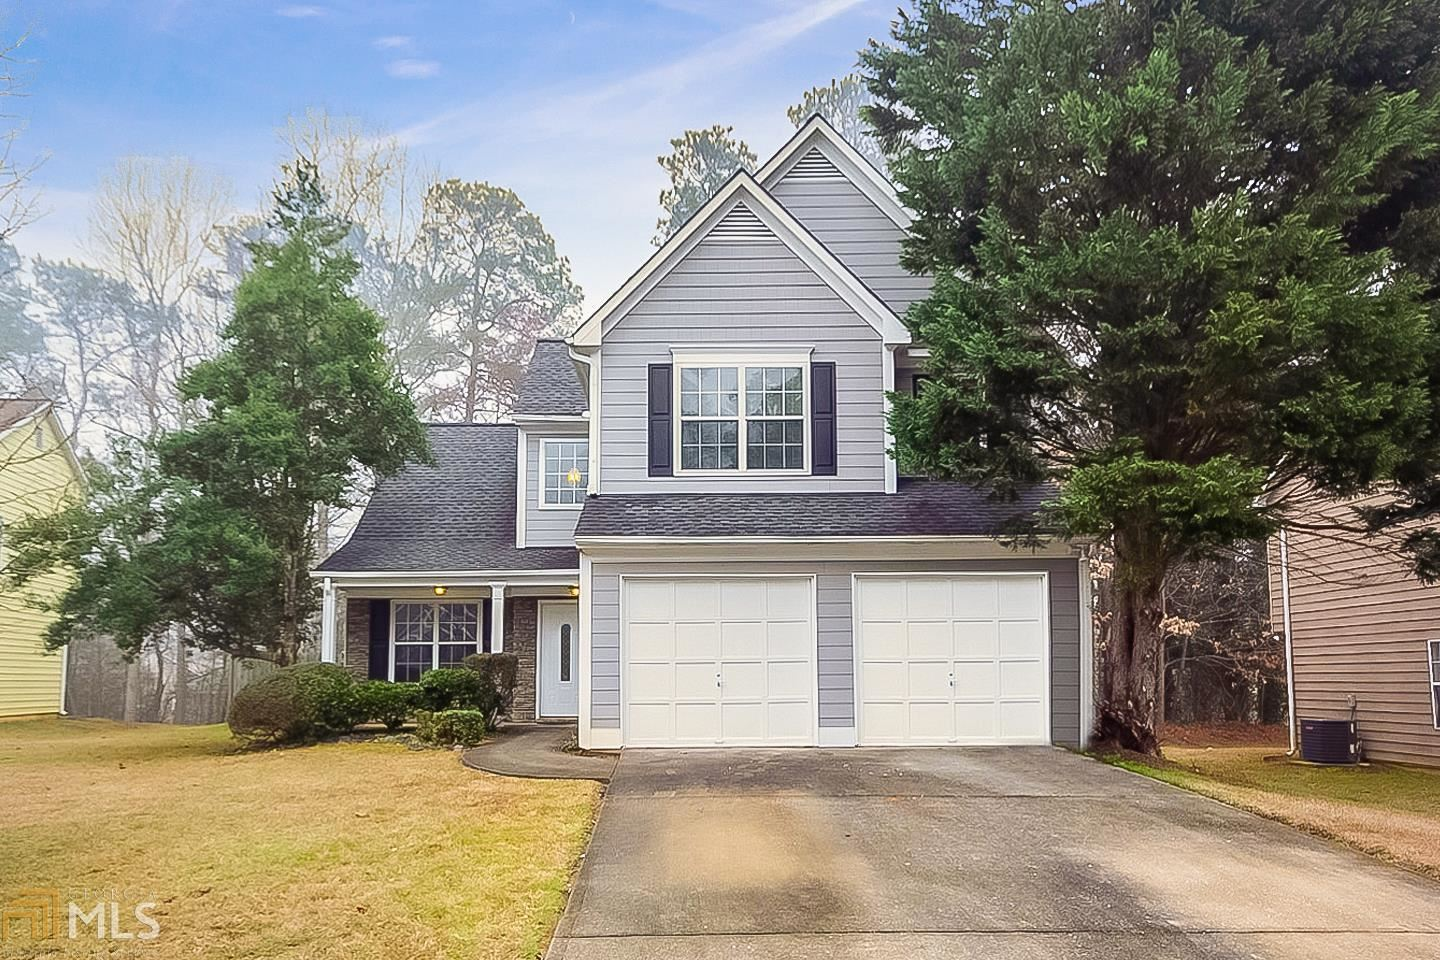 1076 Litchfield, Marietta, GA 30060 - MLS#: 8738690